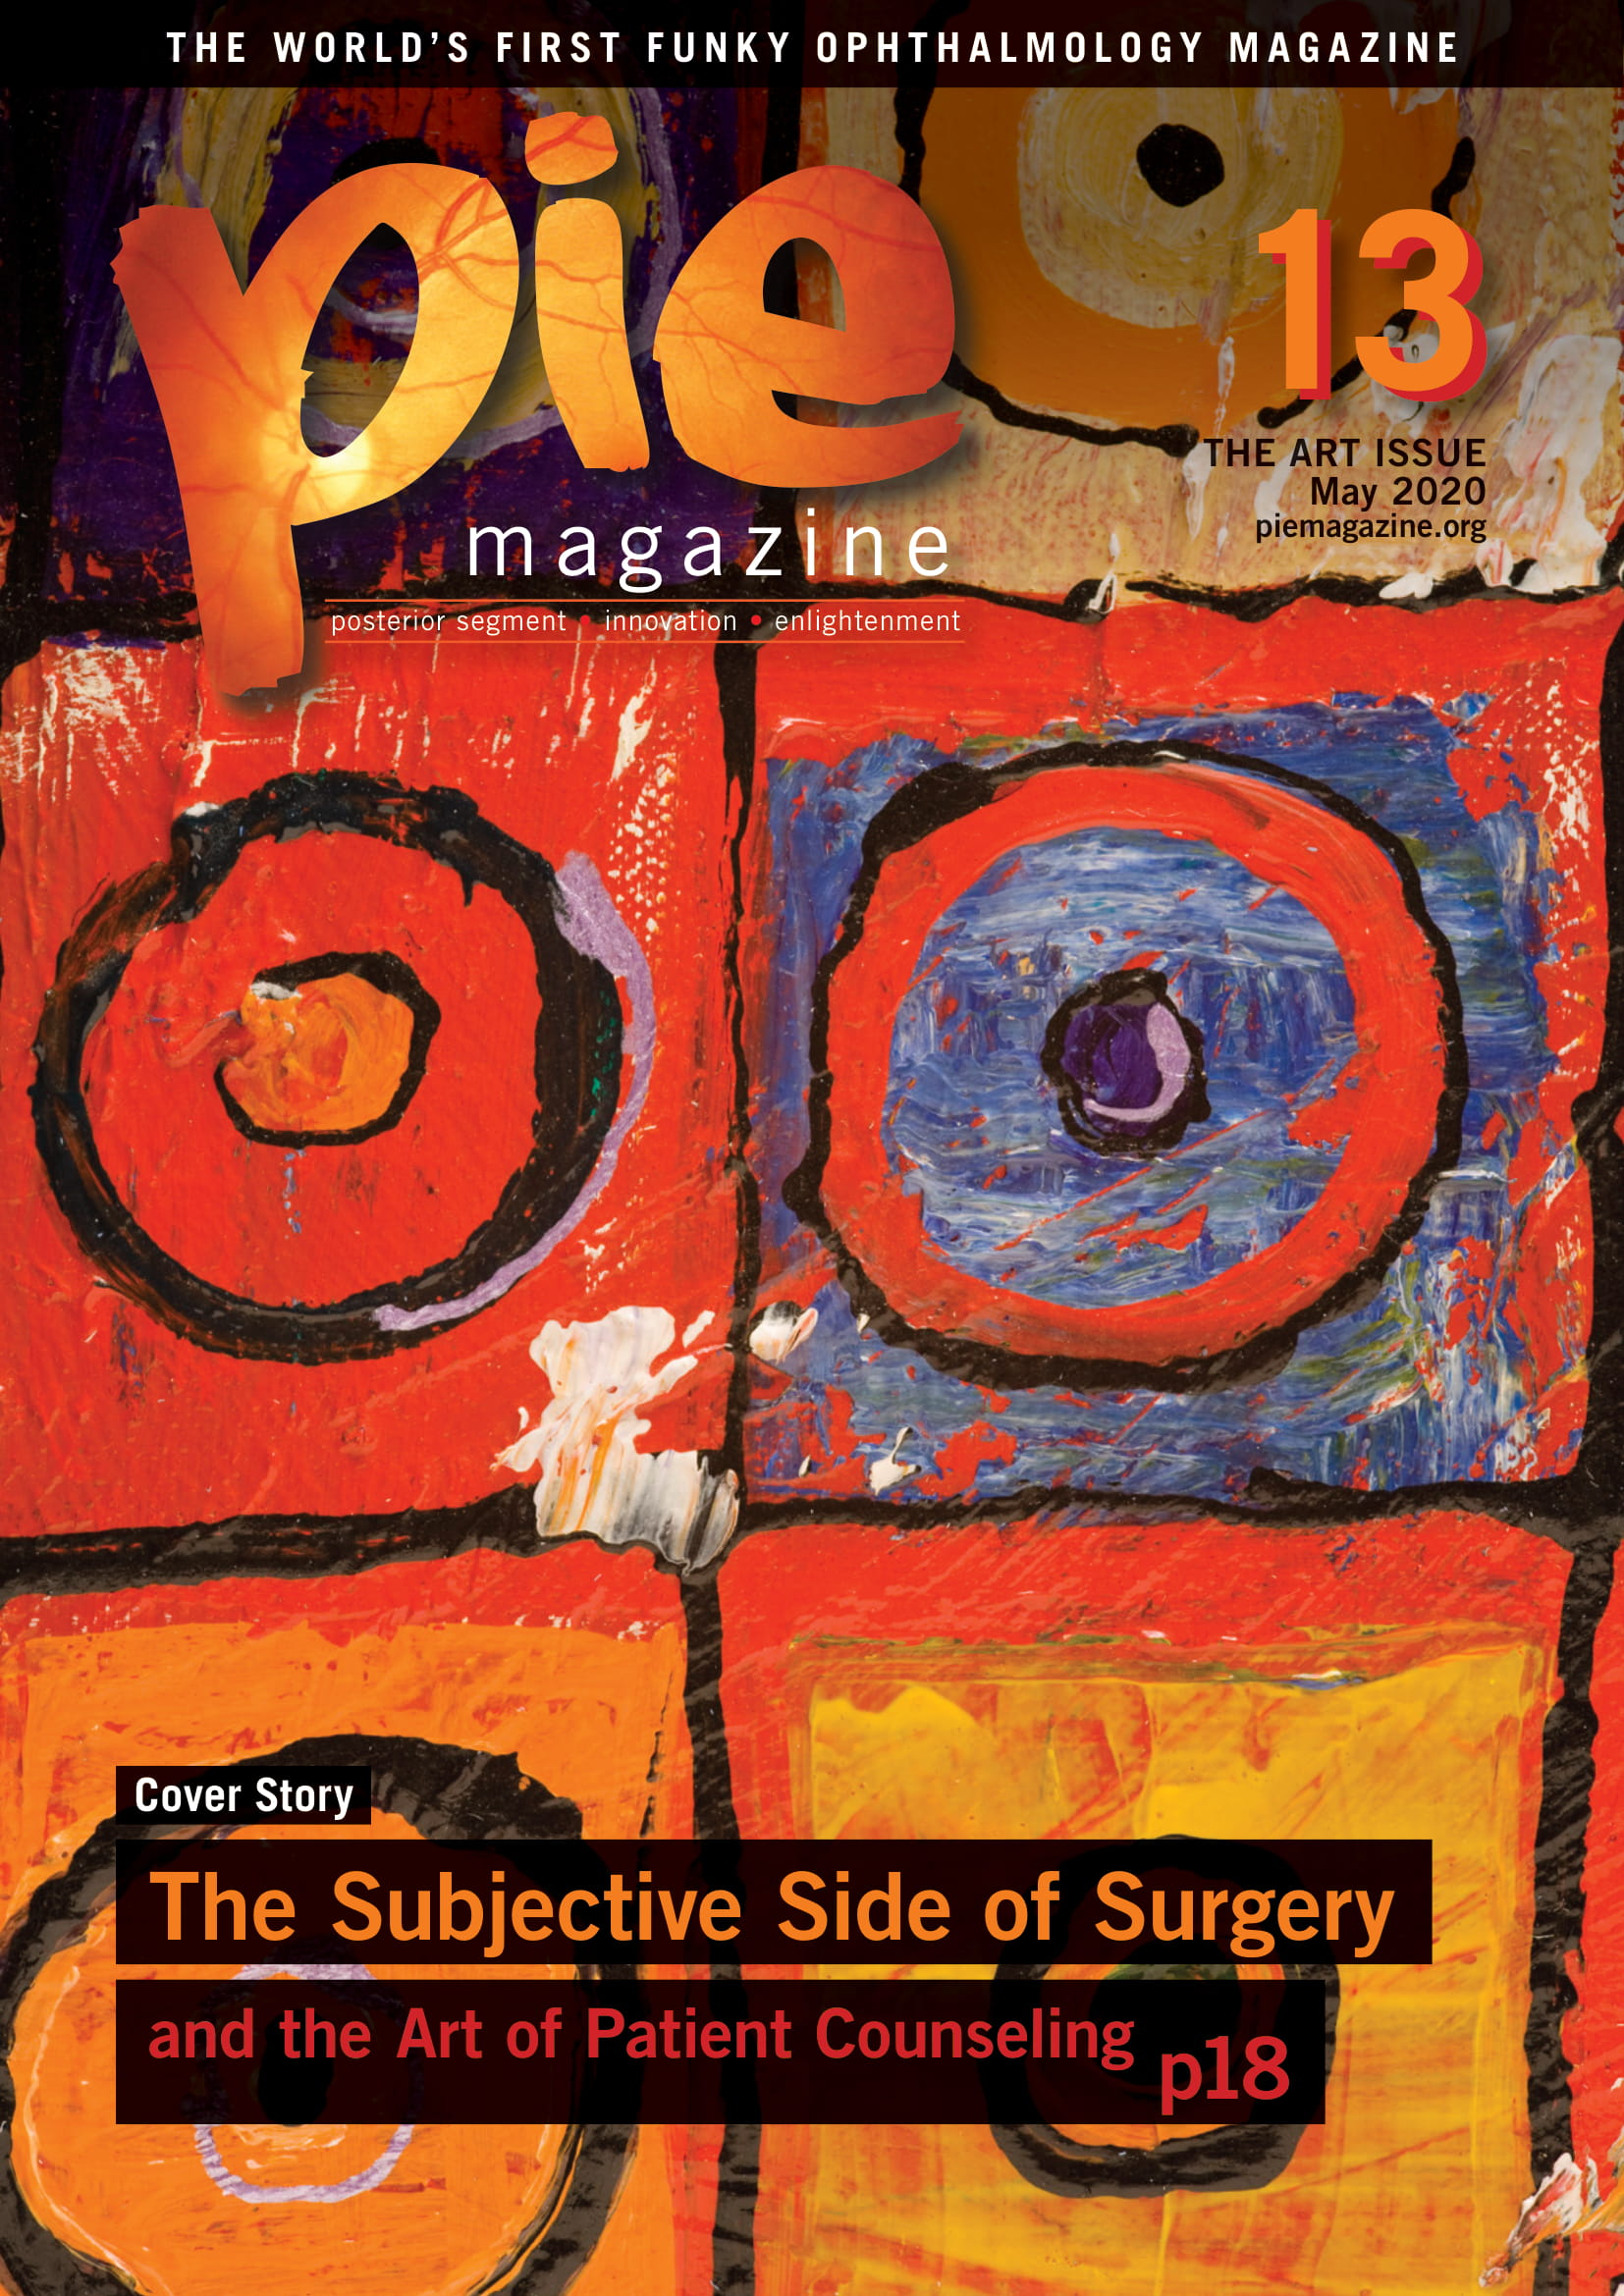 PIE 13_05 12 20_Issuu pages 1 1